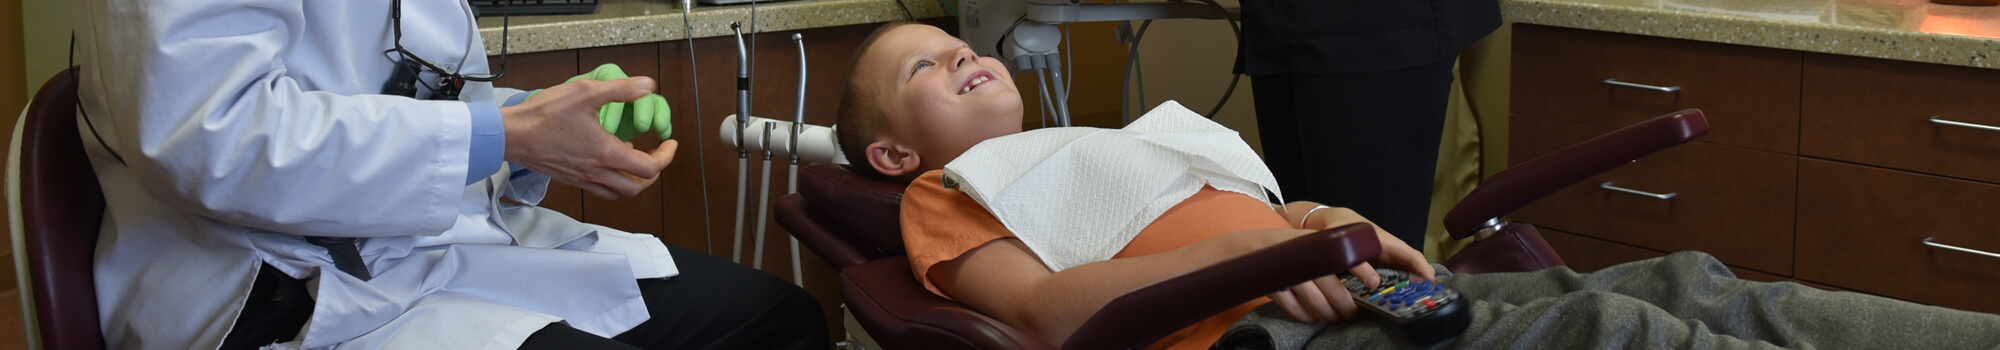 Family dental care that makes everyone smile